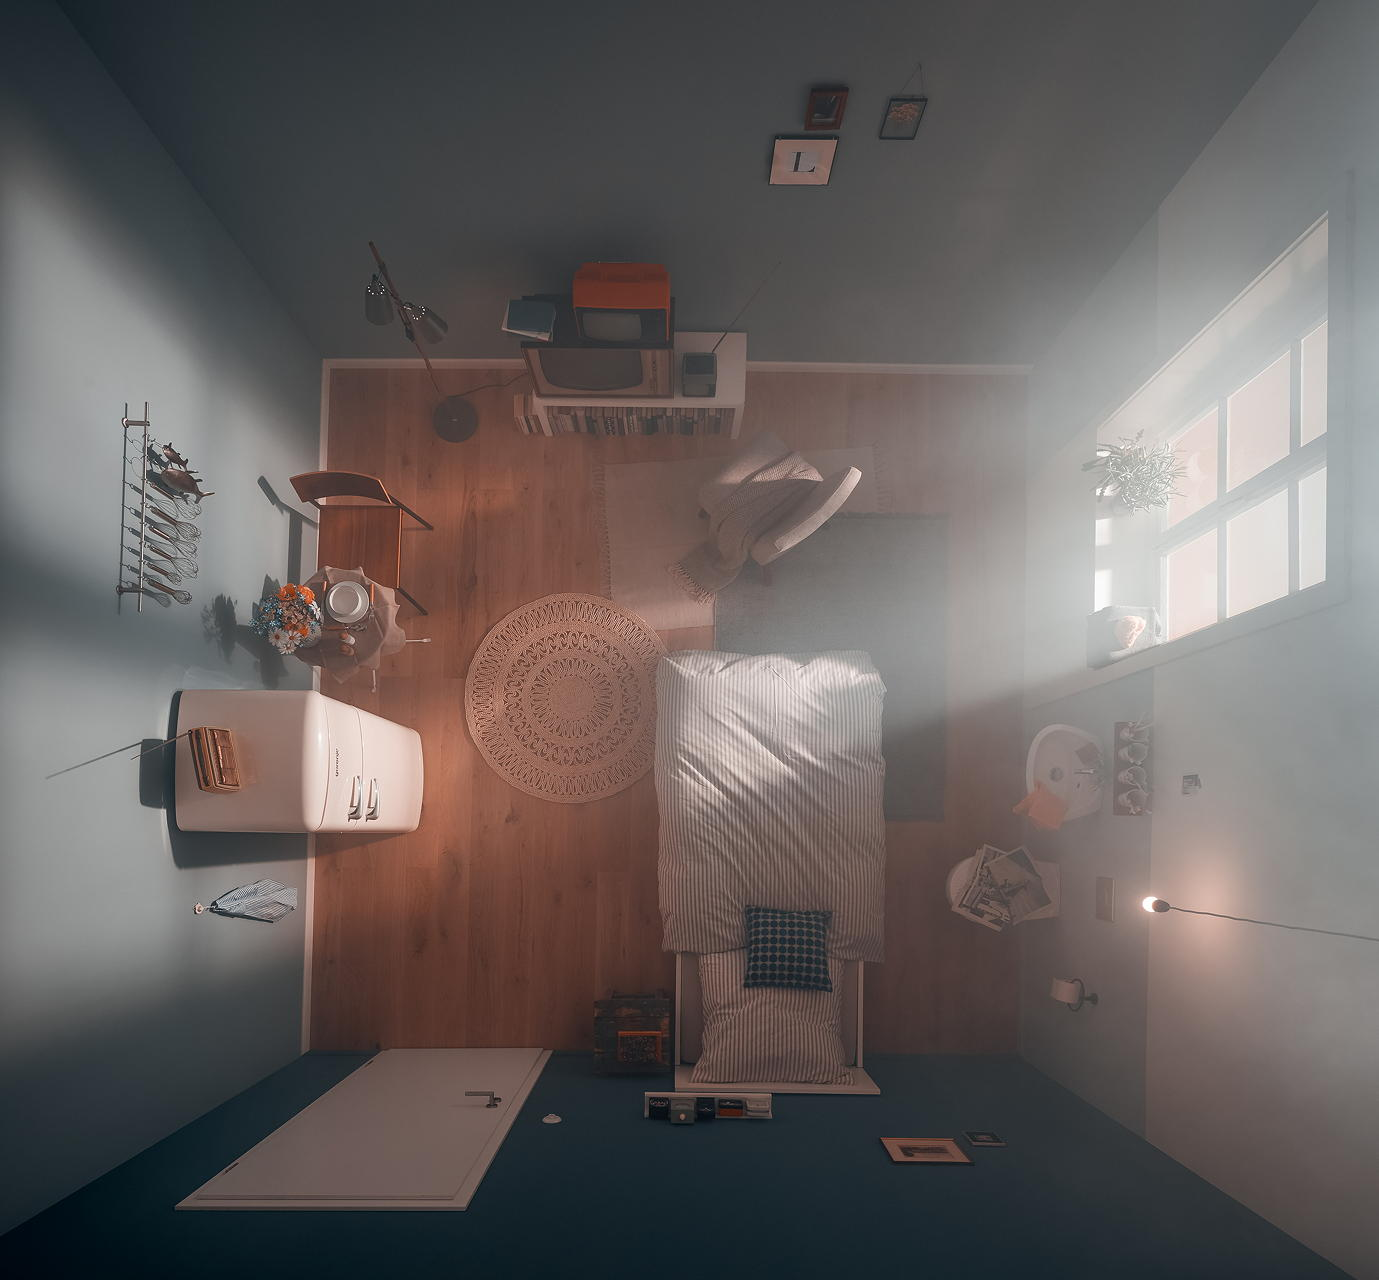 Timo Tomkel - Tiny Room - Felix Schoeller Photoaward